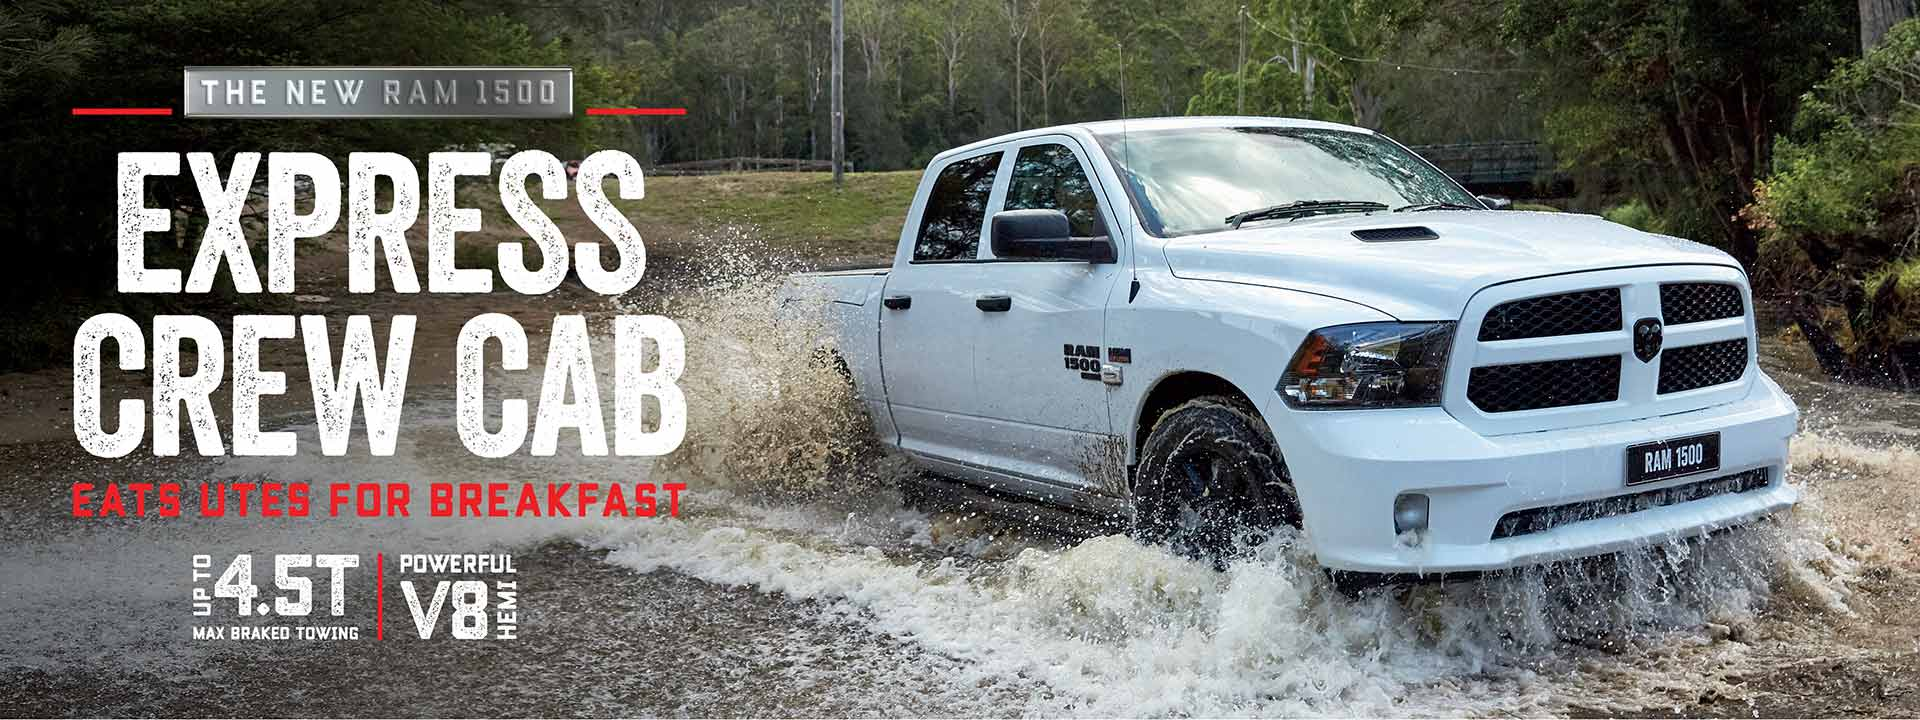 RAM 1500 Express Crew Cab |Eats Utes for Breakfast |V8 Hemi Power |Ram Trucks Australia